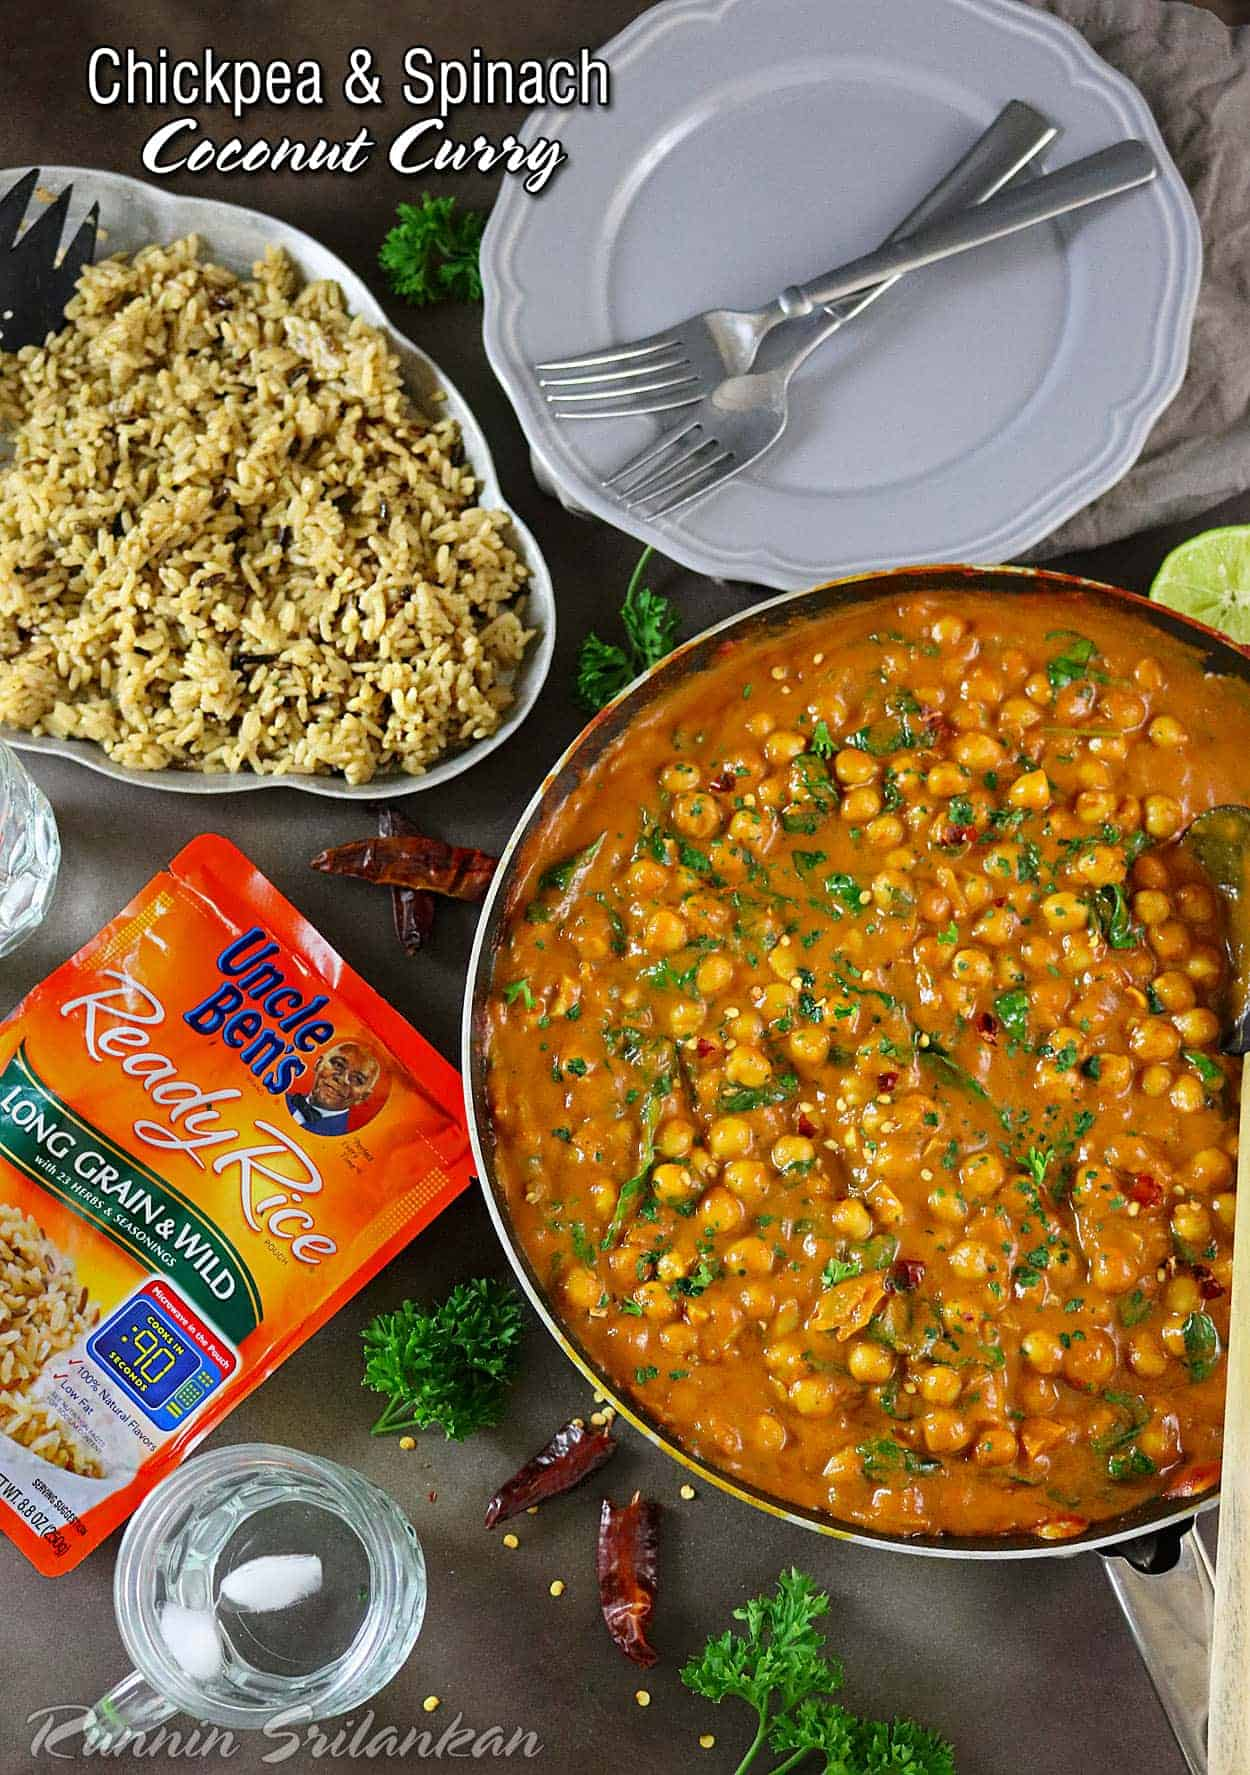 Easy Chickpea & Spinach Curry for dinner